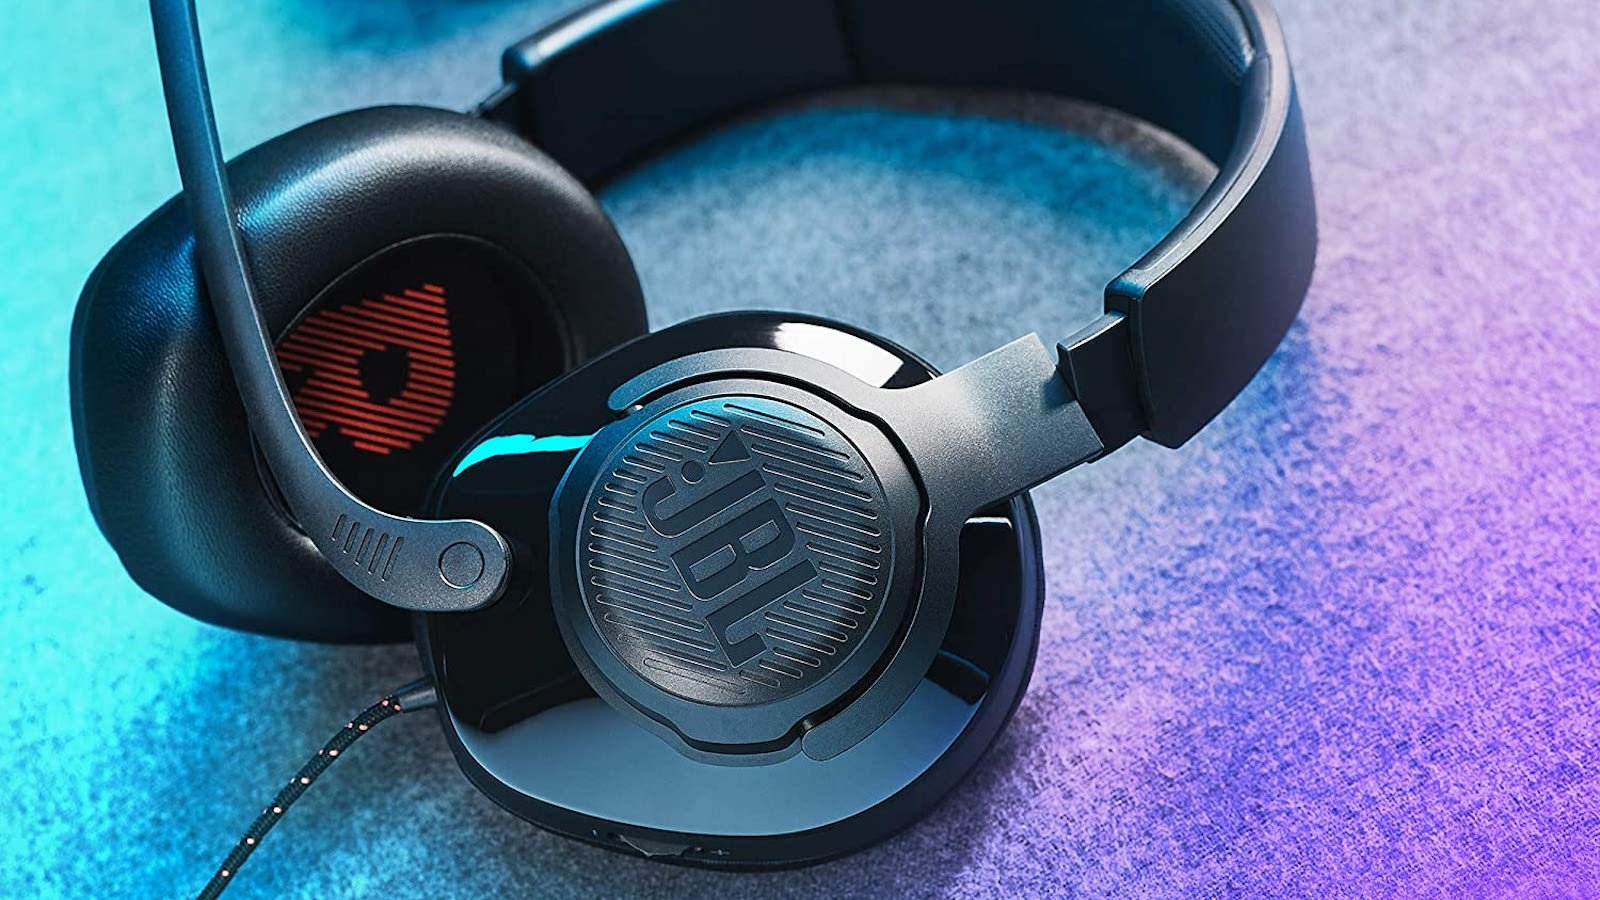 JBL Quantum 200 wired gaming headset includes QuantumSOUND Signature & 50 mm drivers